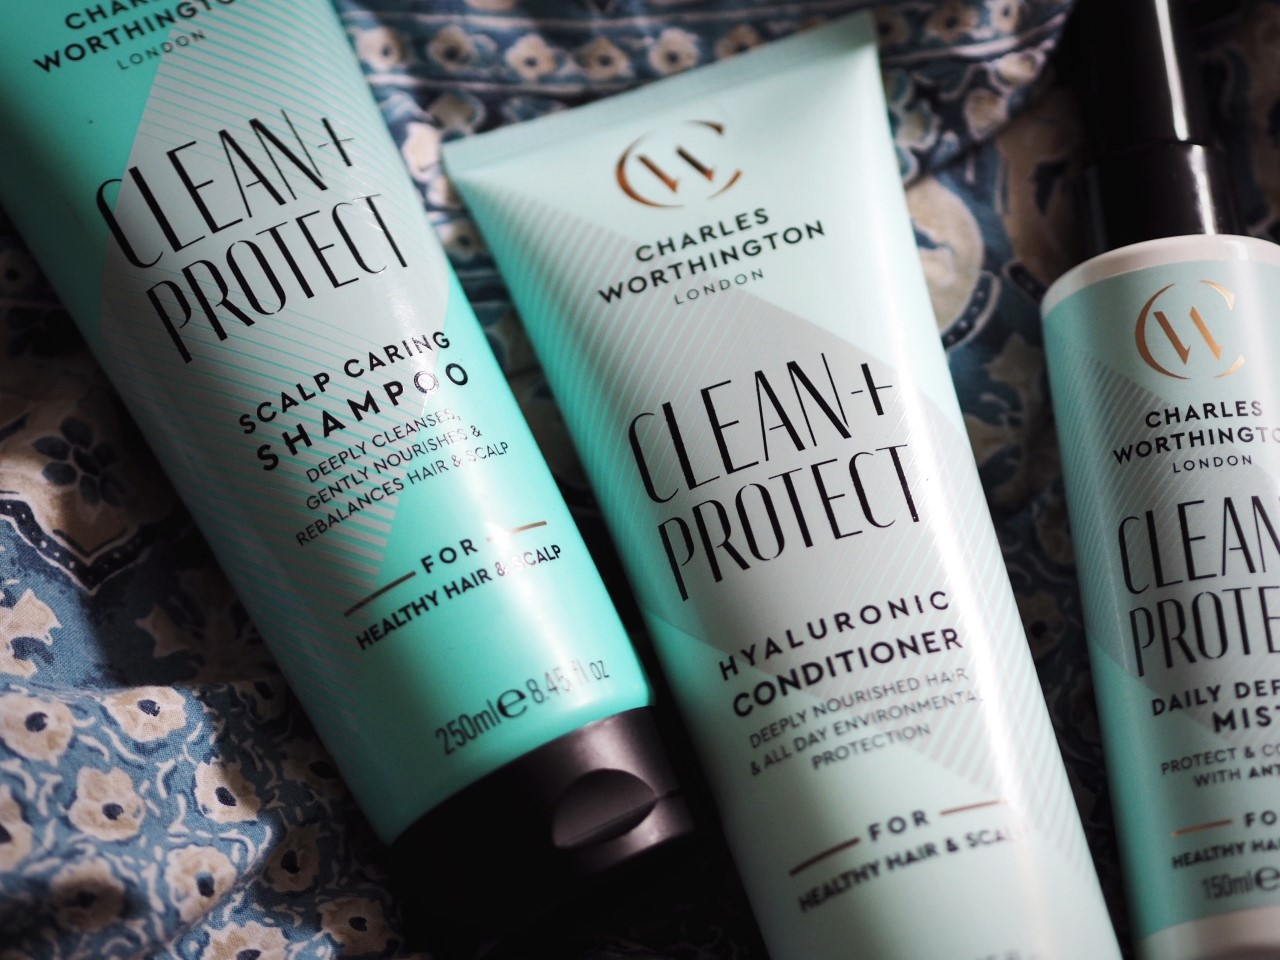 Five Things You Need To Know About Charles Worthington's Clean + Protect Range